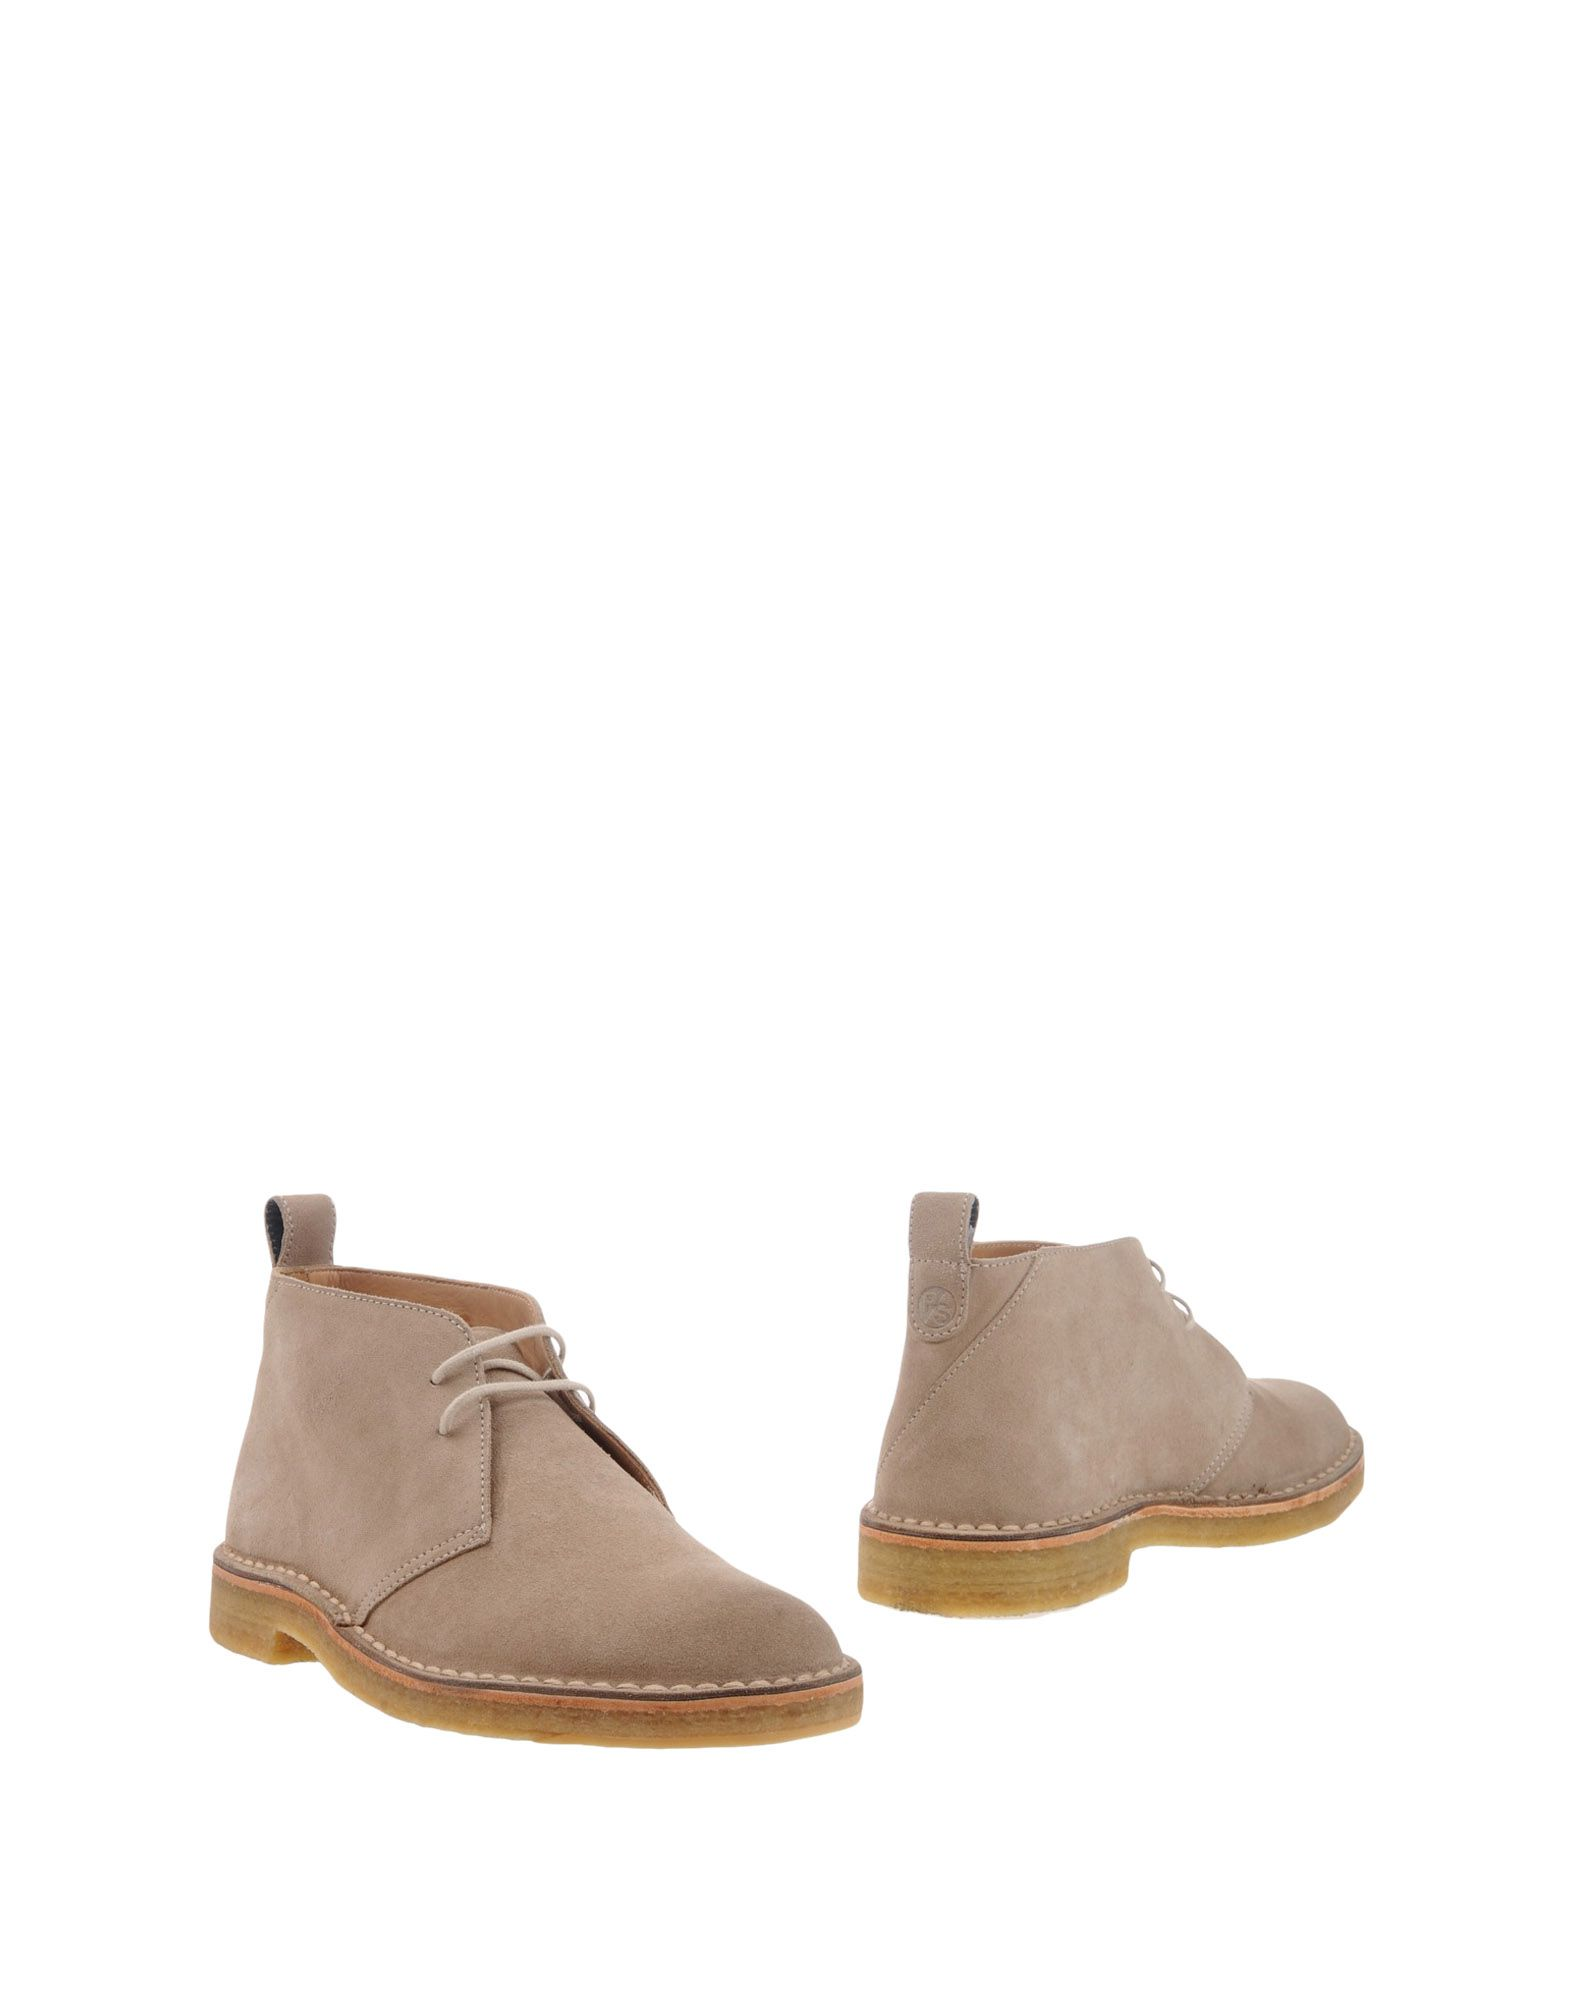 Bottine Ps By Paul Smith Femme - Bottines Ps By Paul Smith sur